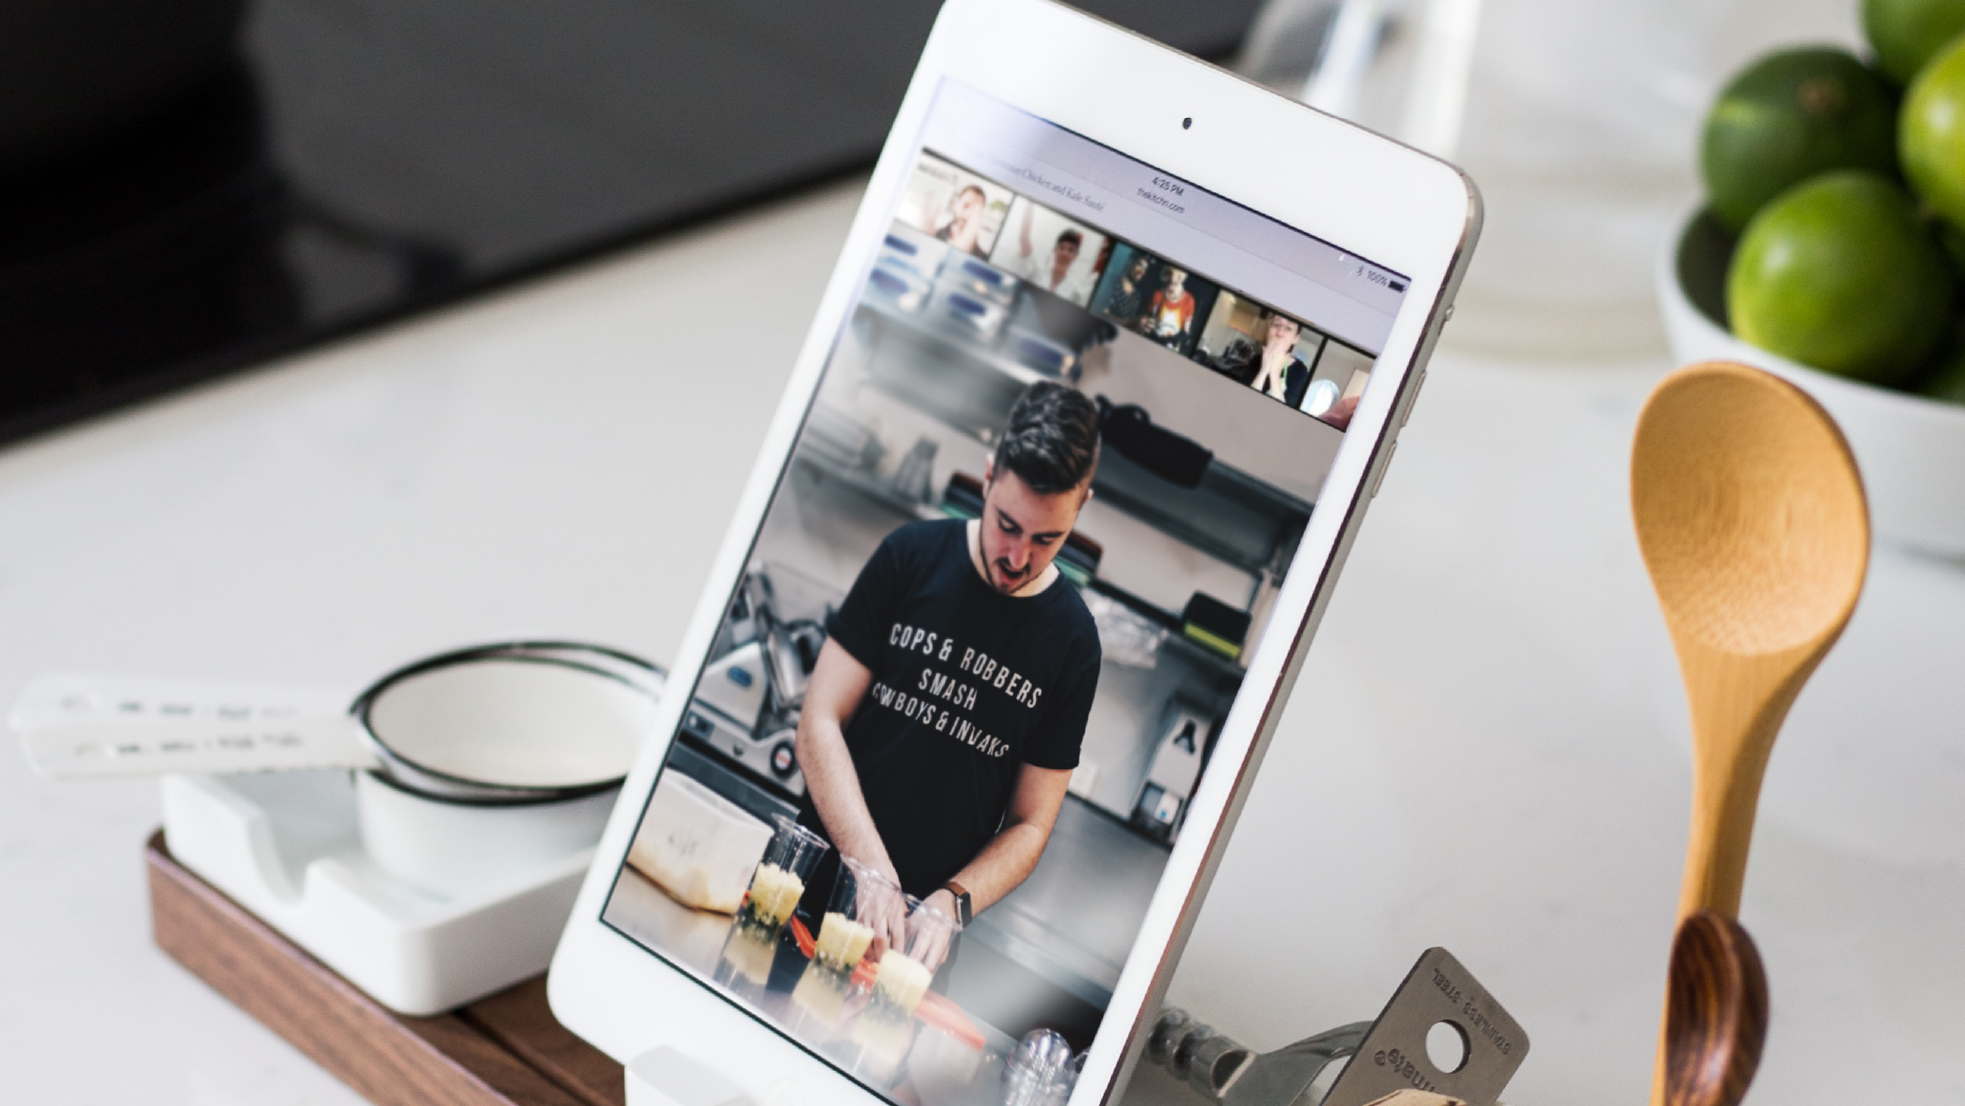 video chat cooking video in an airbnb home as new brand strategy